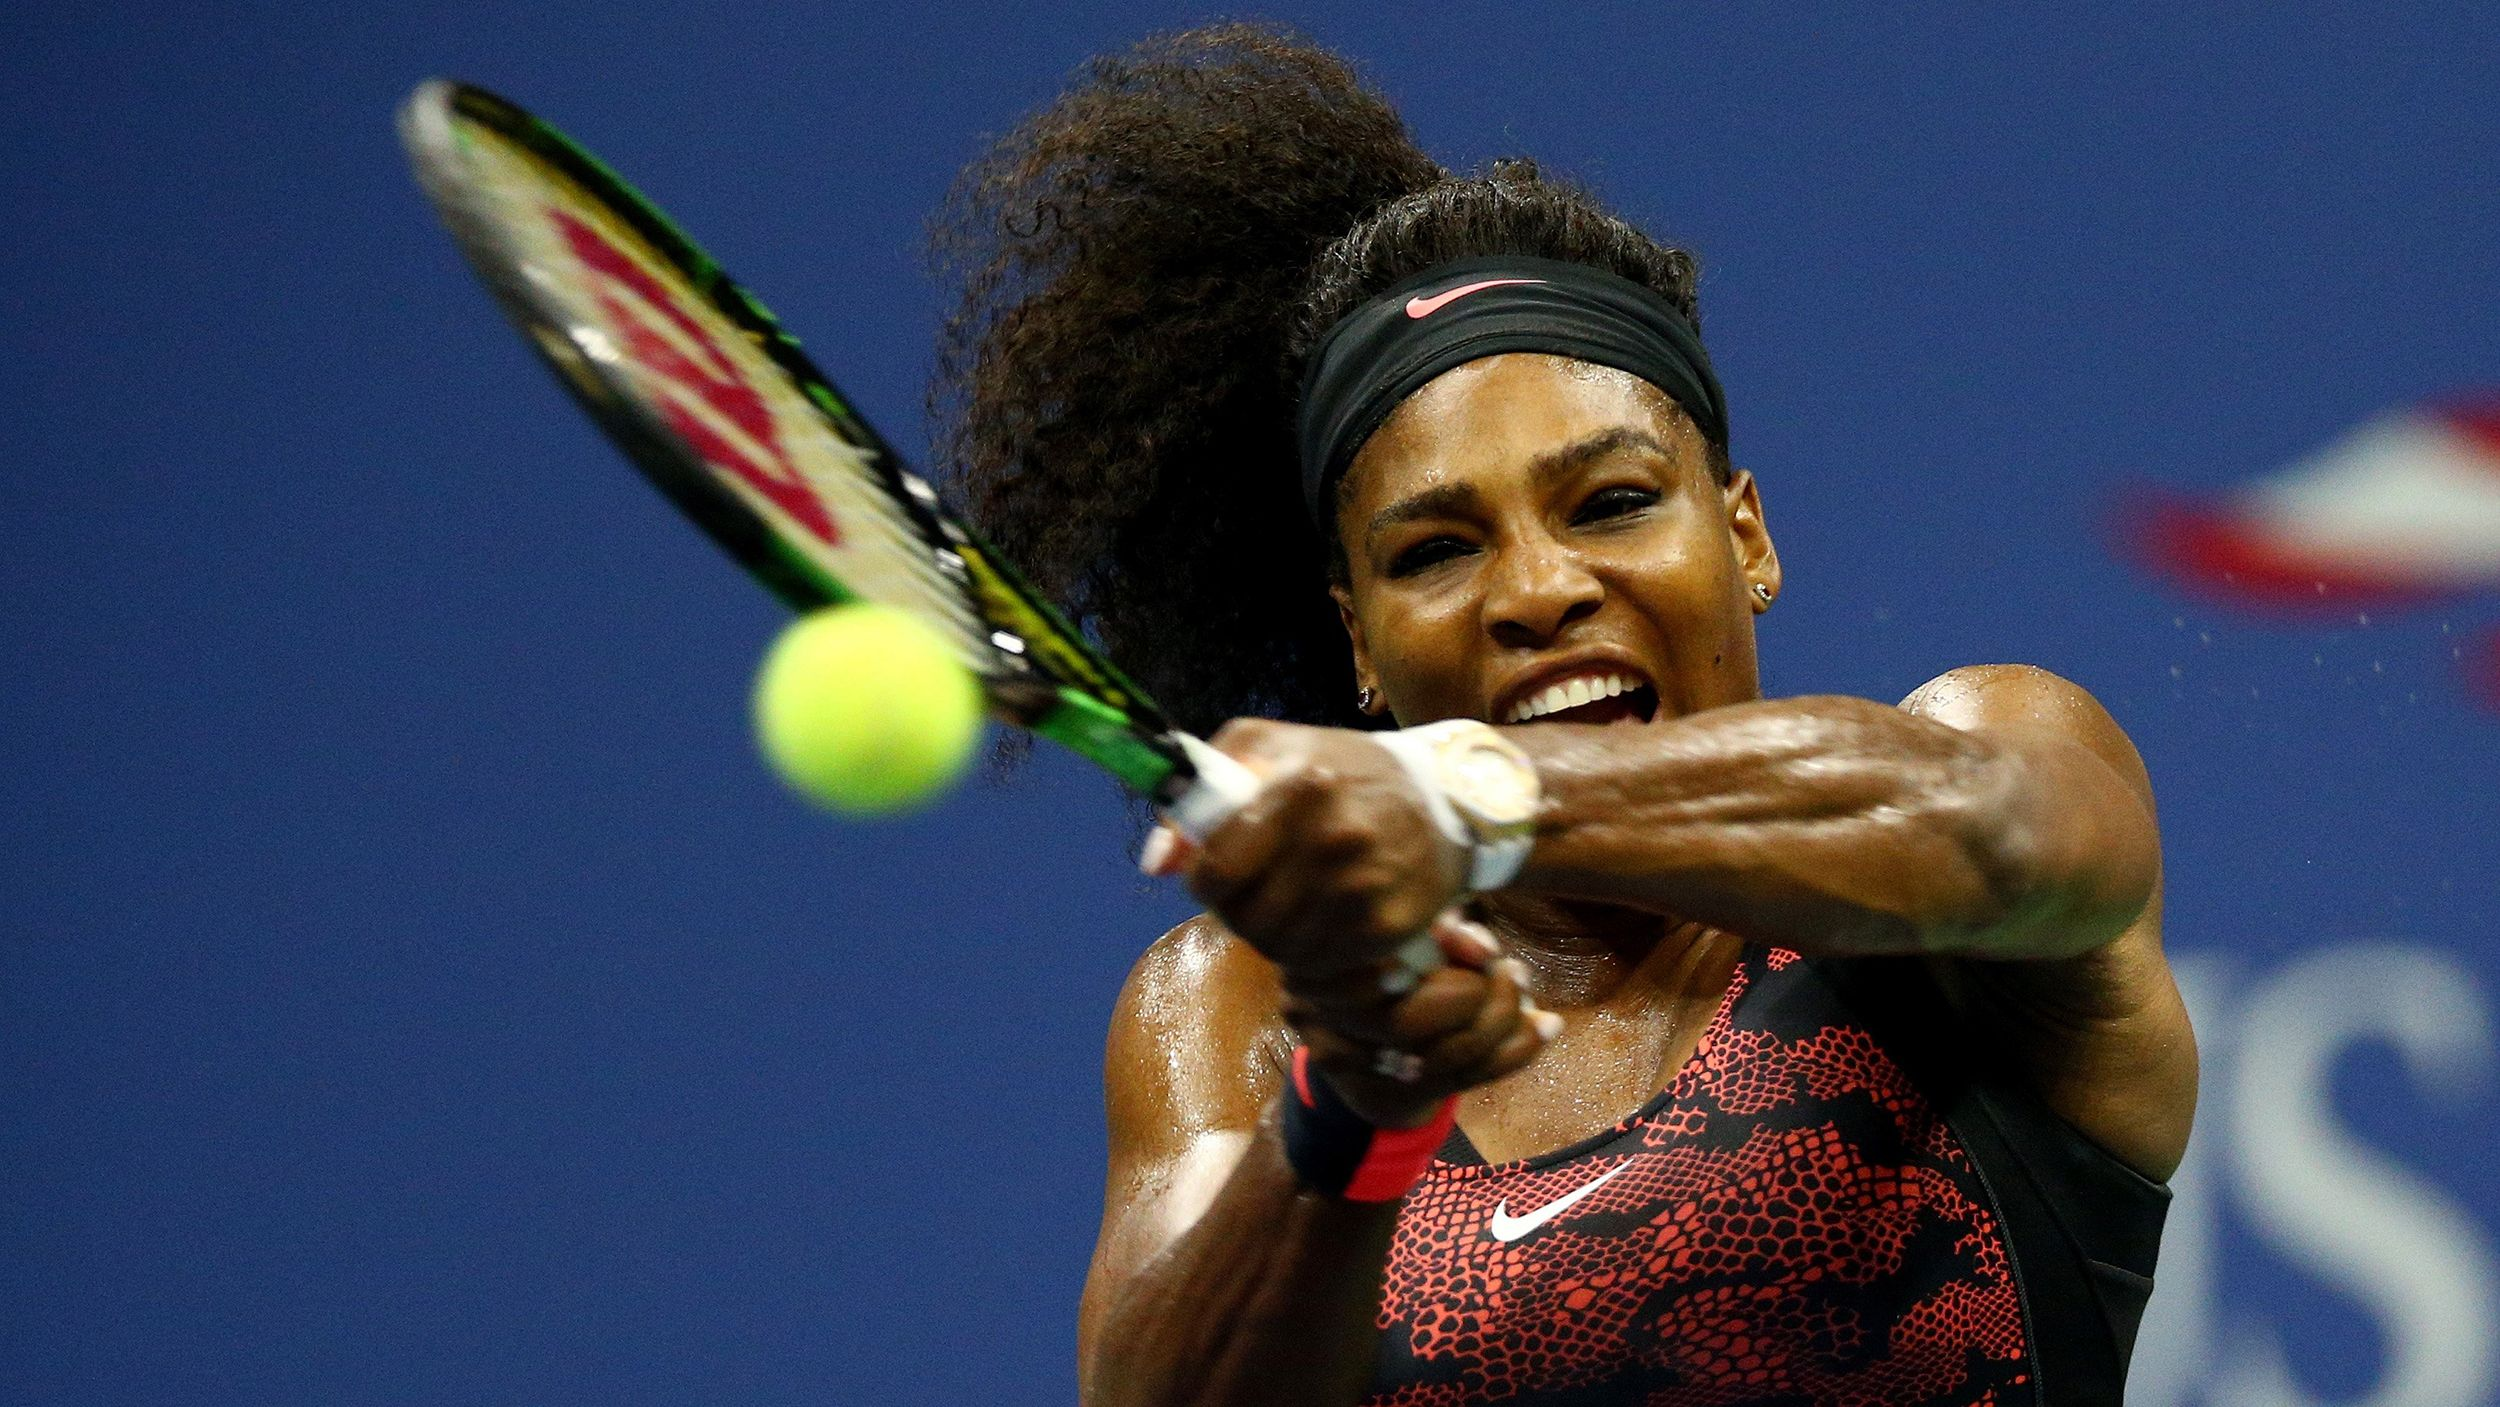 How to be mentally tough like Serena Williams: 4 ways to 'bring it on'